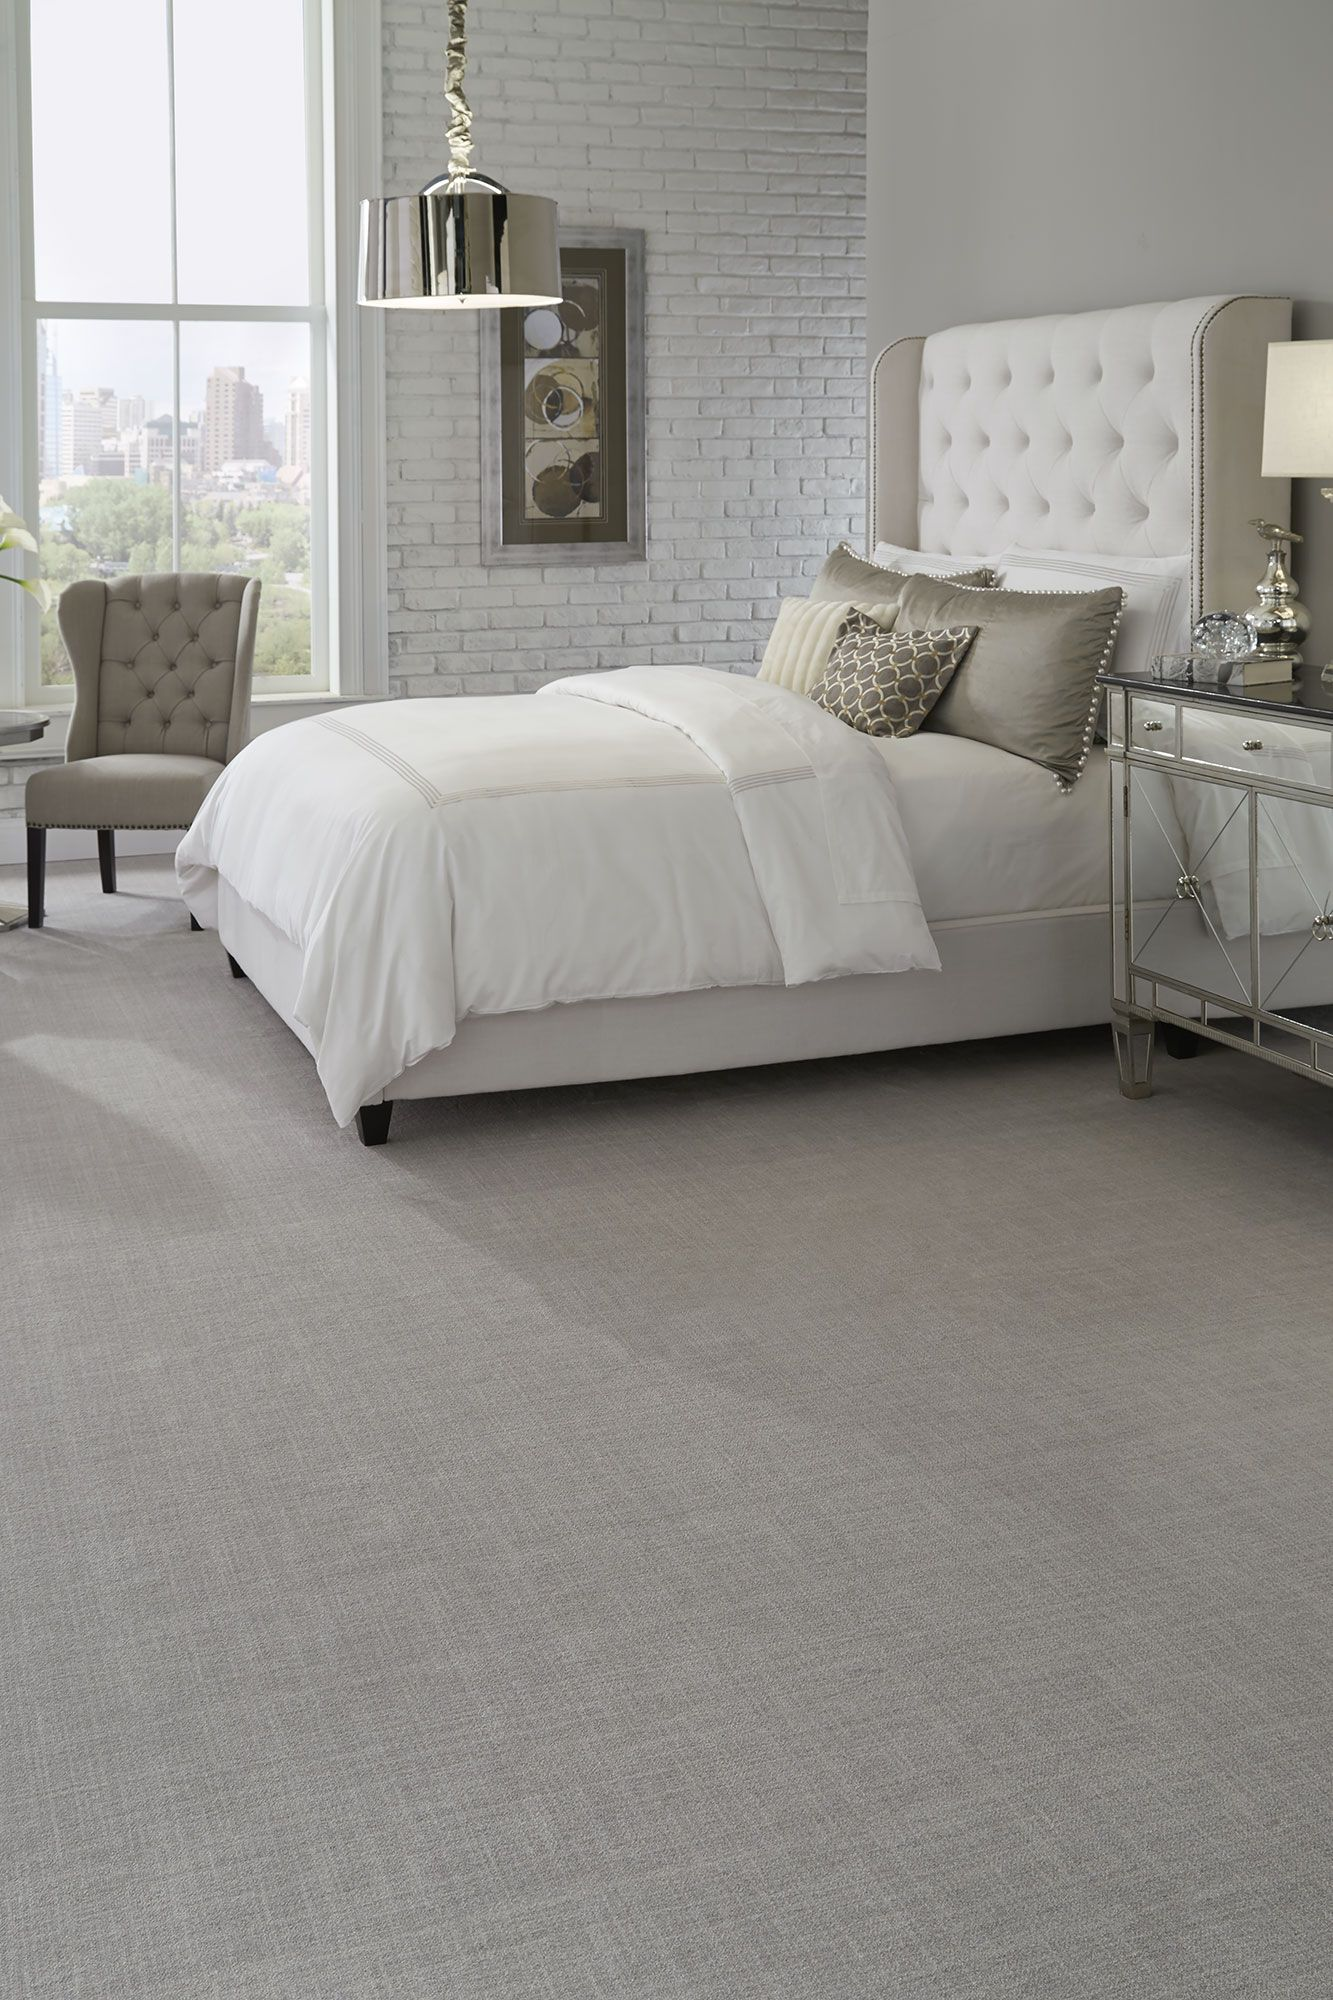 Brushed Linen Patterned Carpet Bedroom Ideas Neutral